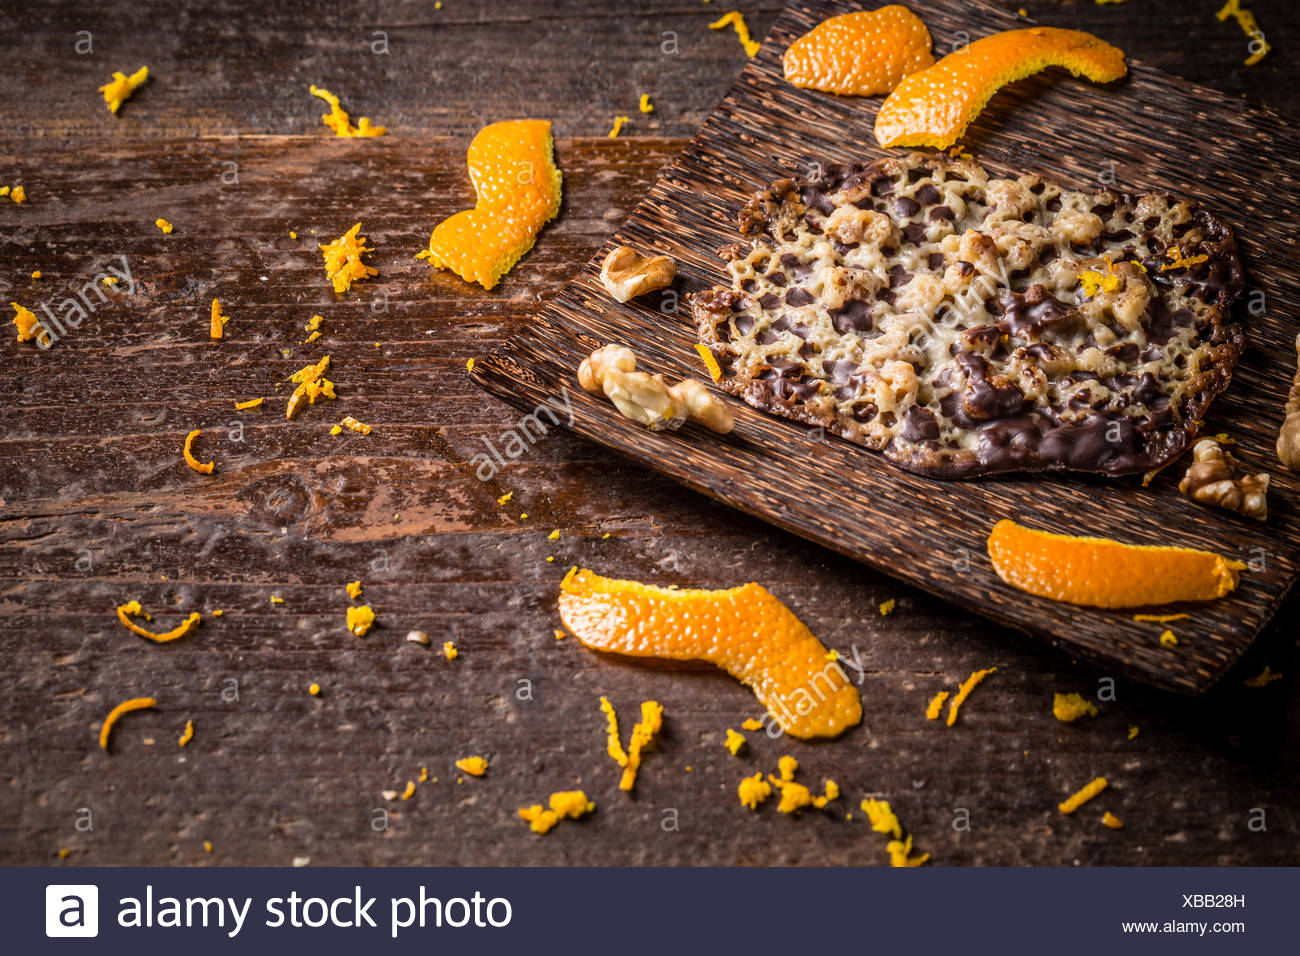 Candied orange brittle cake - Stock Image